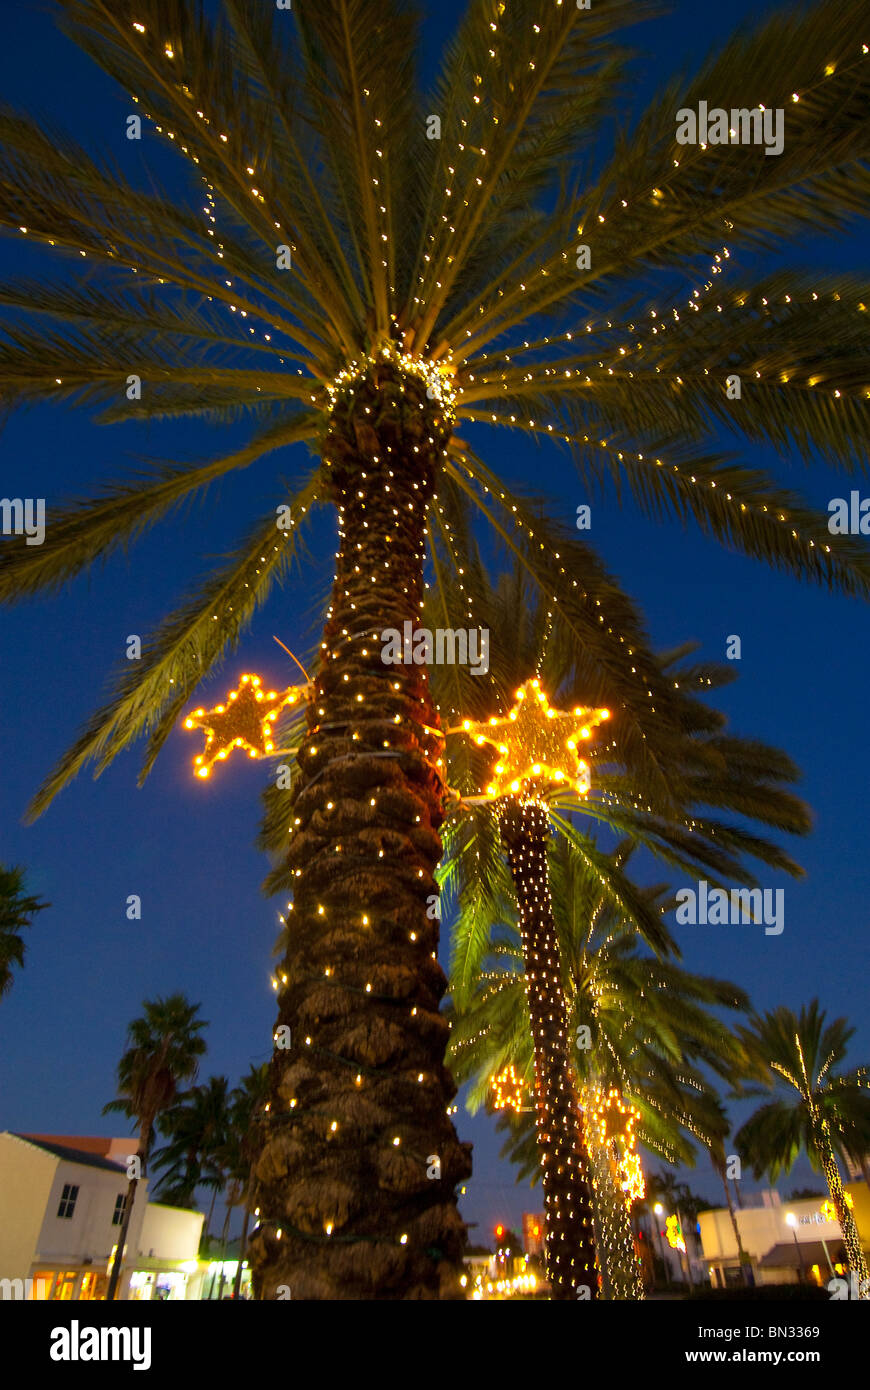 Palm Trees Decorated With Christmas Lights In The Normandy Isle